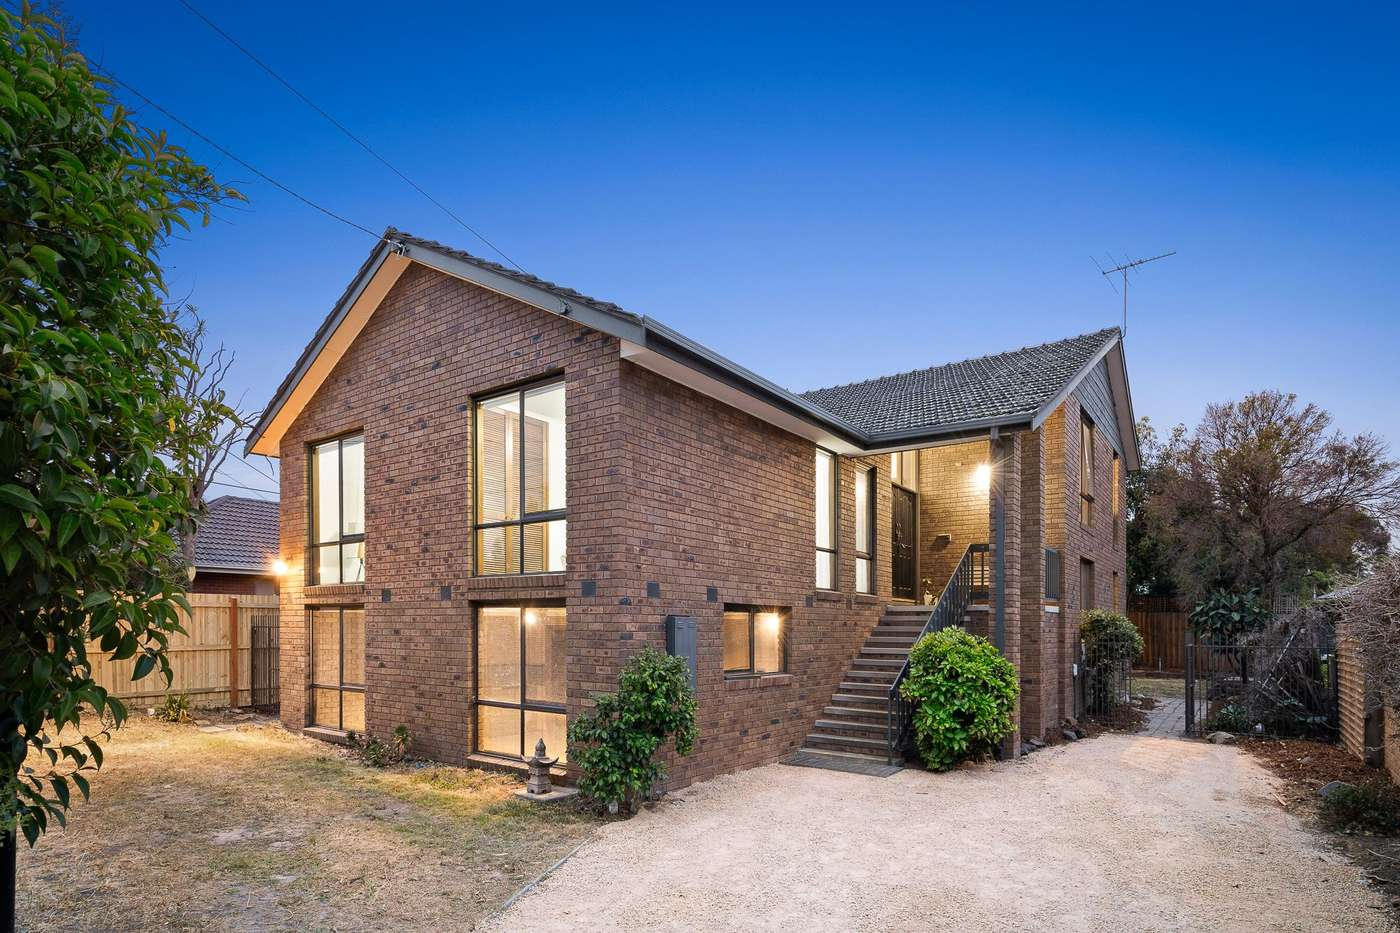 Main view of Homely house listing, 22 Lincoln Drive, Keilor East, VIC 3033